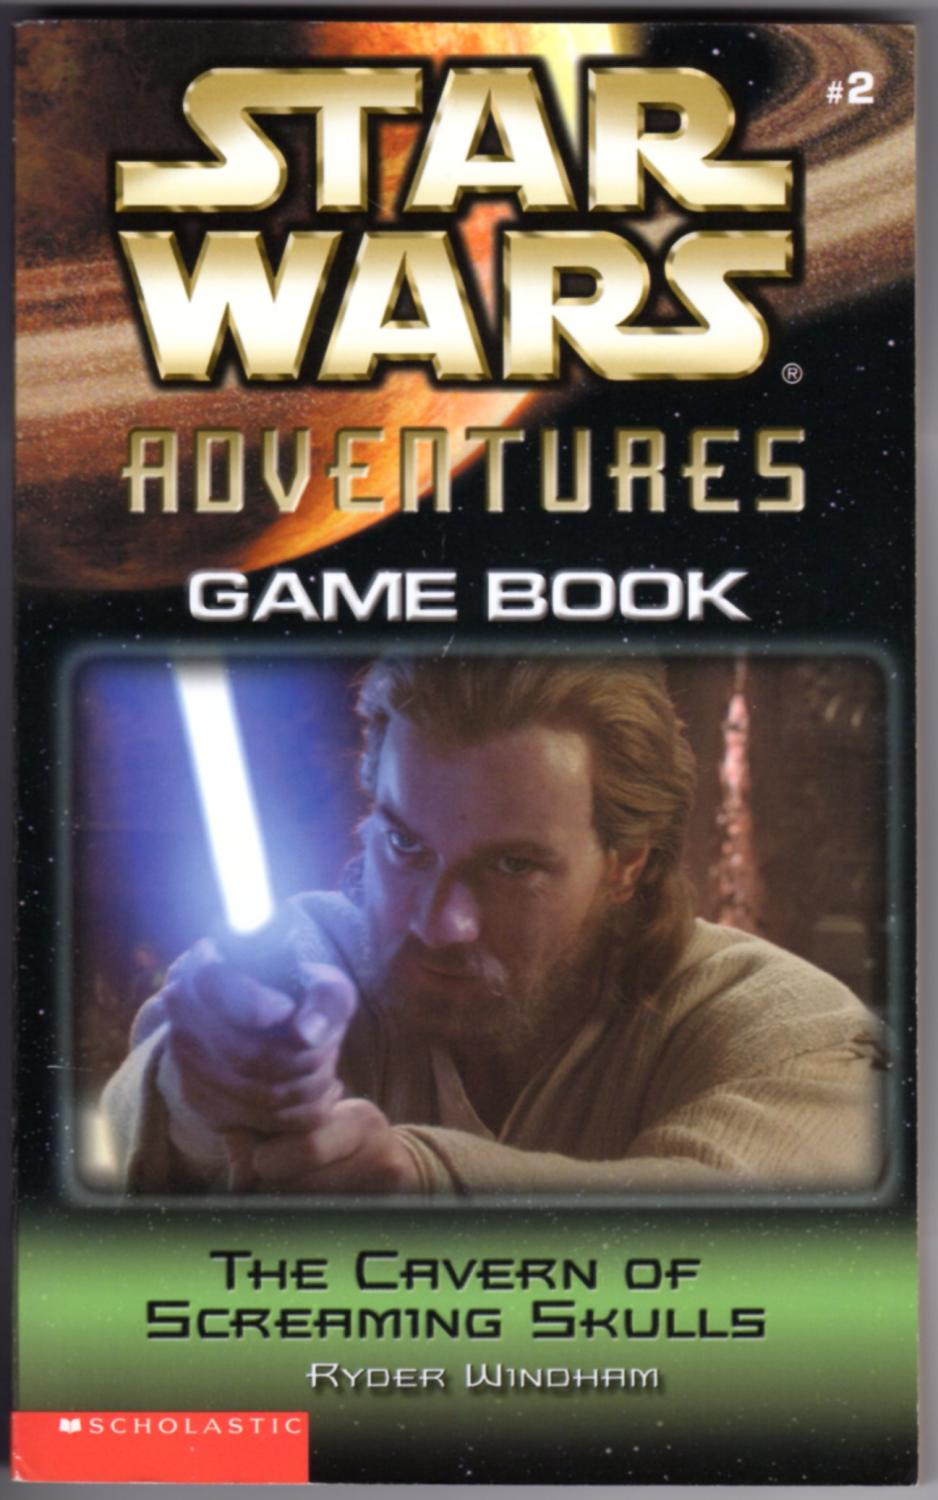 Star Wars Adventures Game Book: The Cavern of the Screaming Skulls